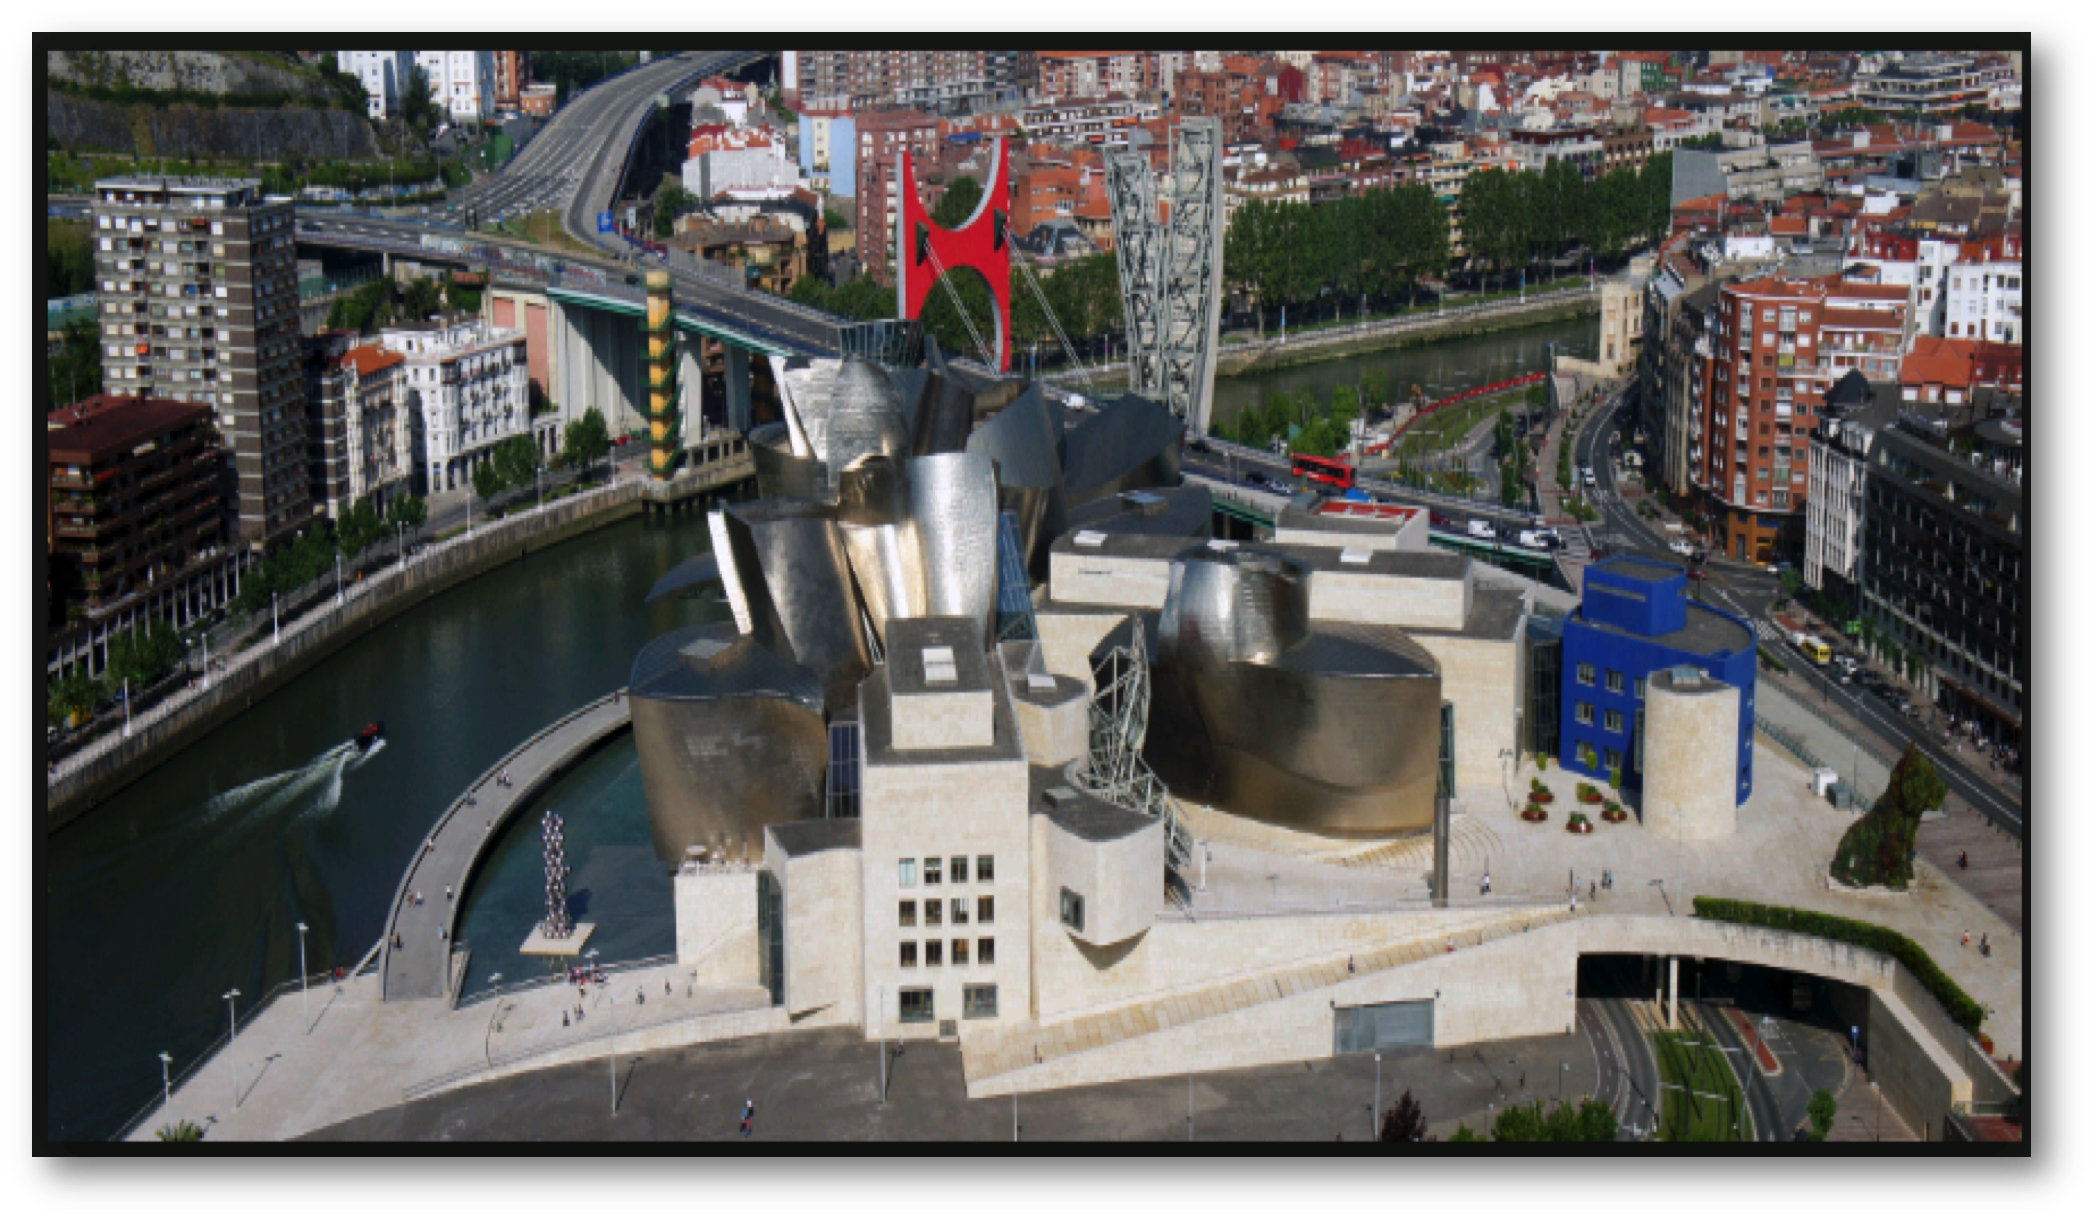 Figure 1. Aerial photograph of the Guggenheim Museum building (Frank Gehry, 1997) in Bilbao, Spain.